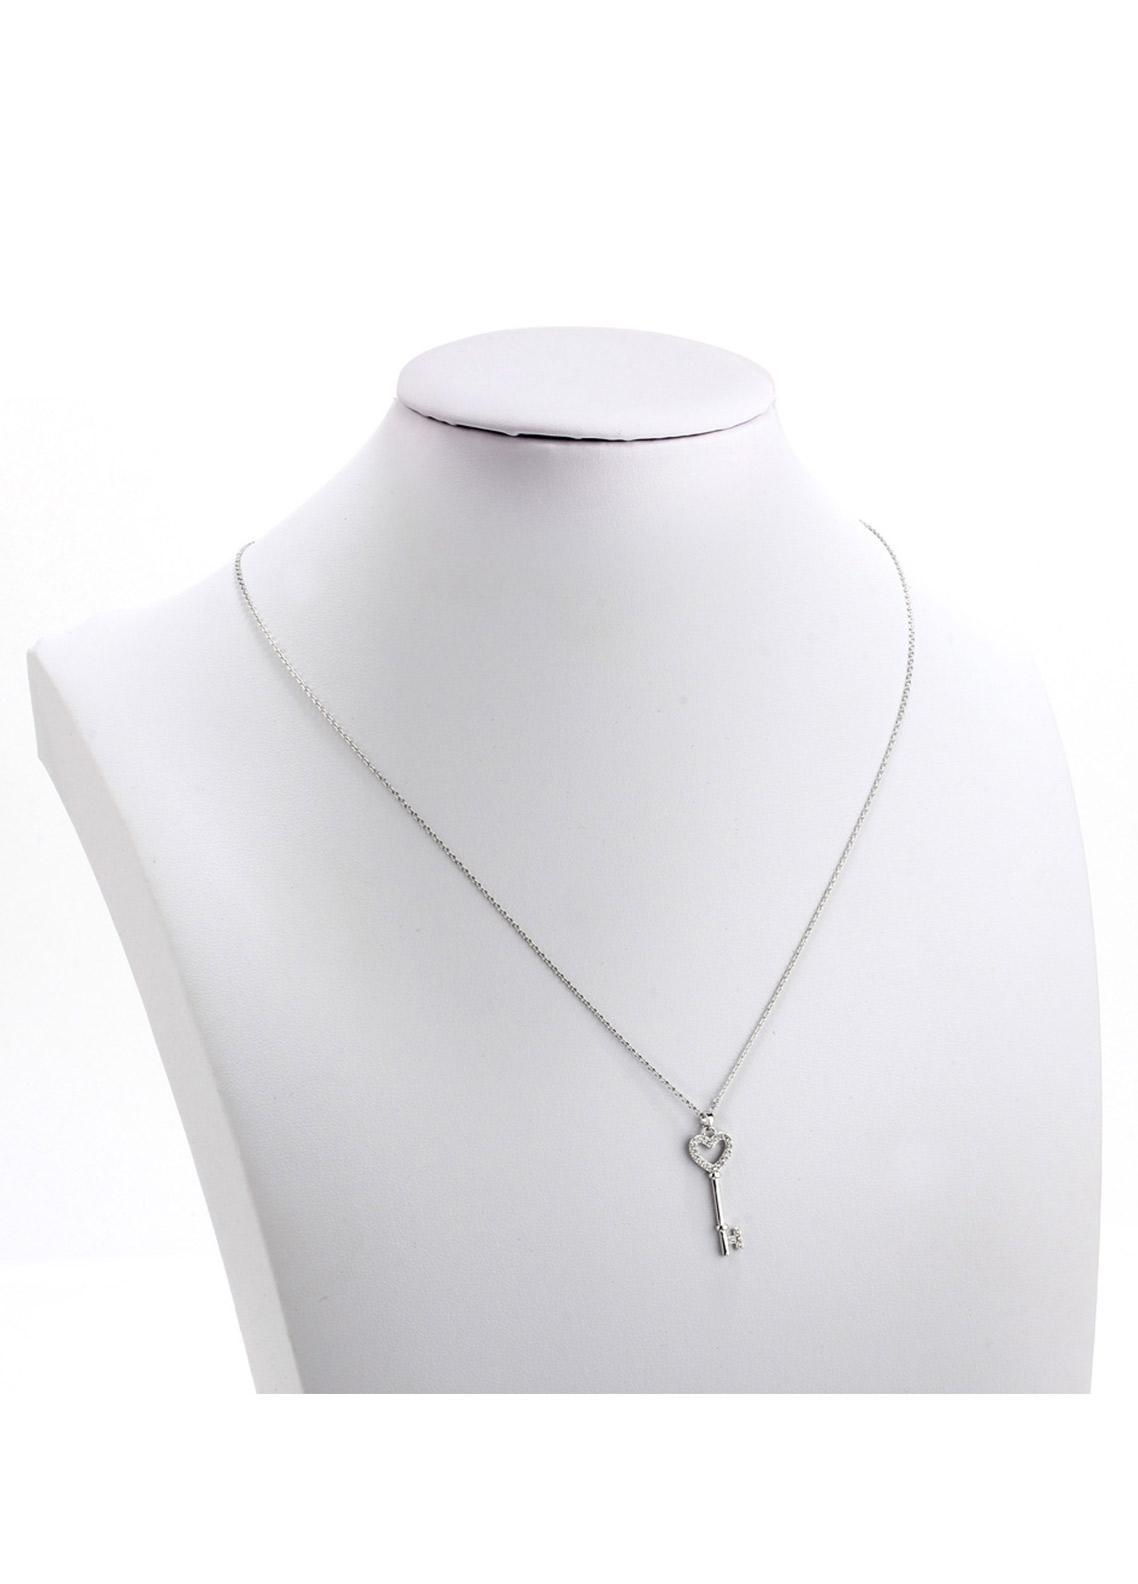 Anna Grace London by Silk Avenue Silver Plated Crystal Key Pendant Necklace AGN0048 - Ladies Jewellery